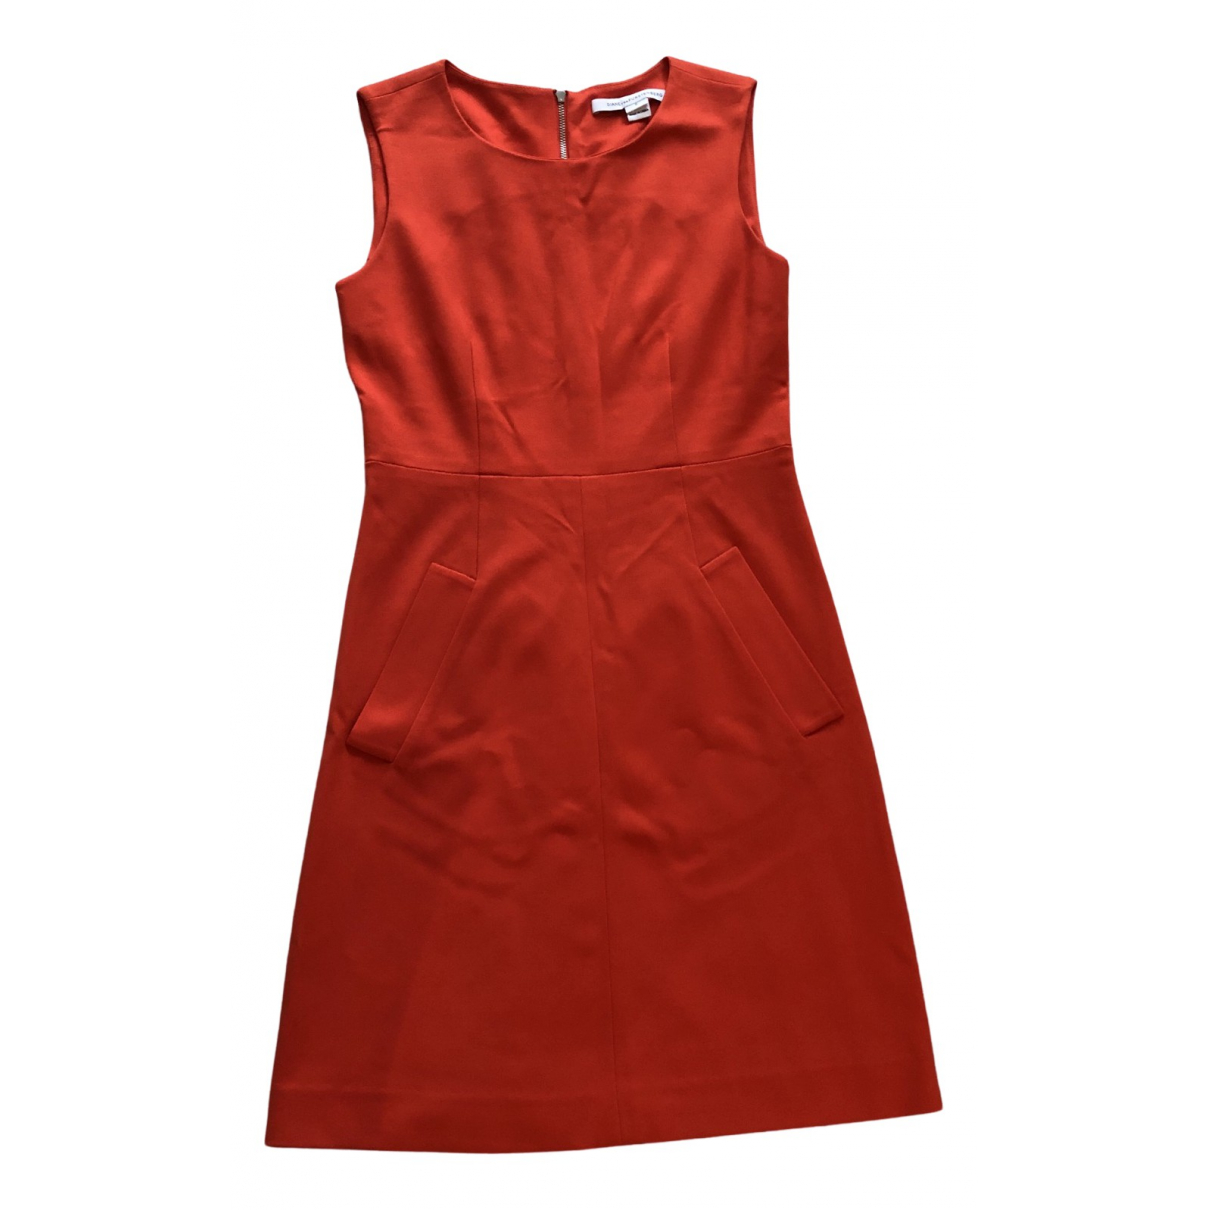 Diane Von Furstenberg N Orange dress for Women 0 0-5